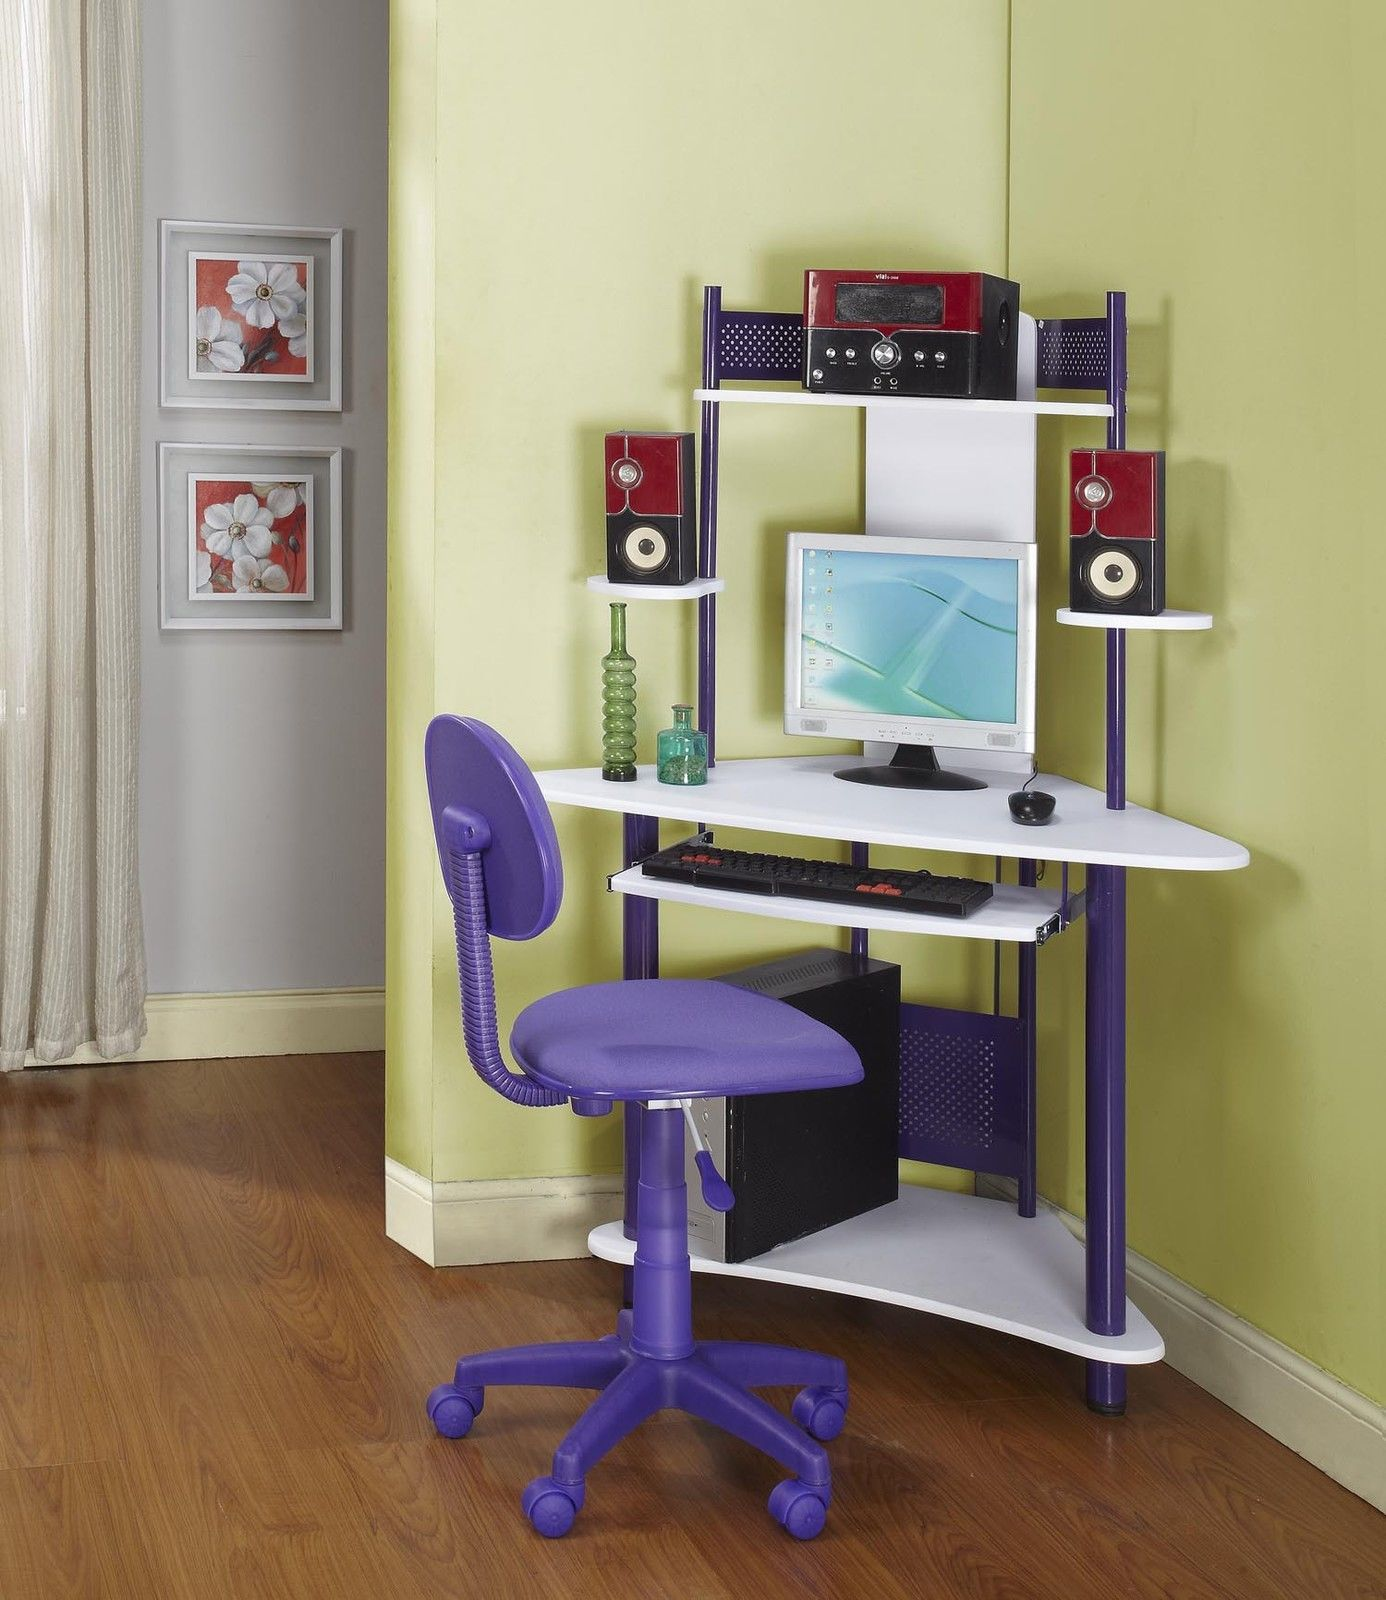 Charmant Small Computer Desk And Chair   Space Saving Desk Ideas Check More At Http:/